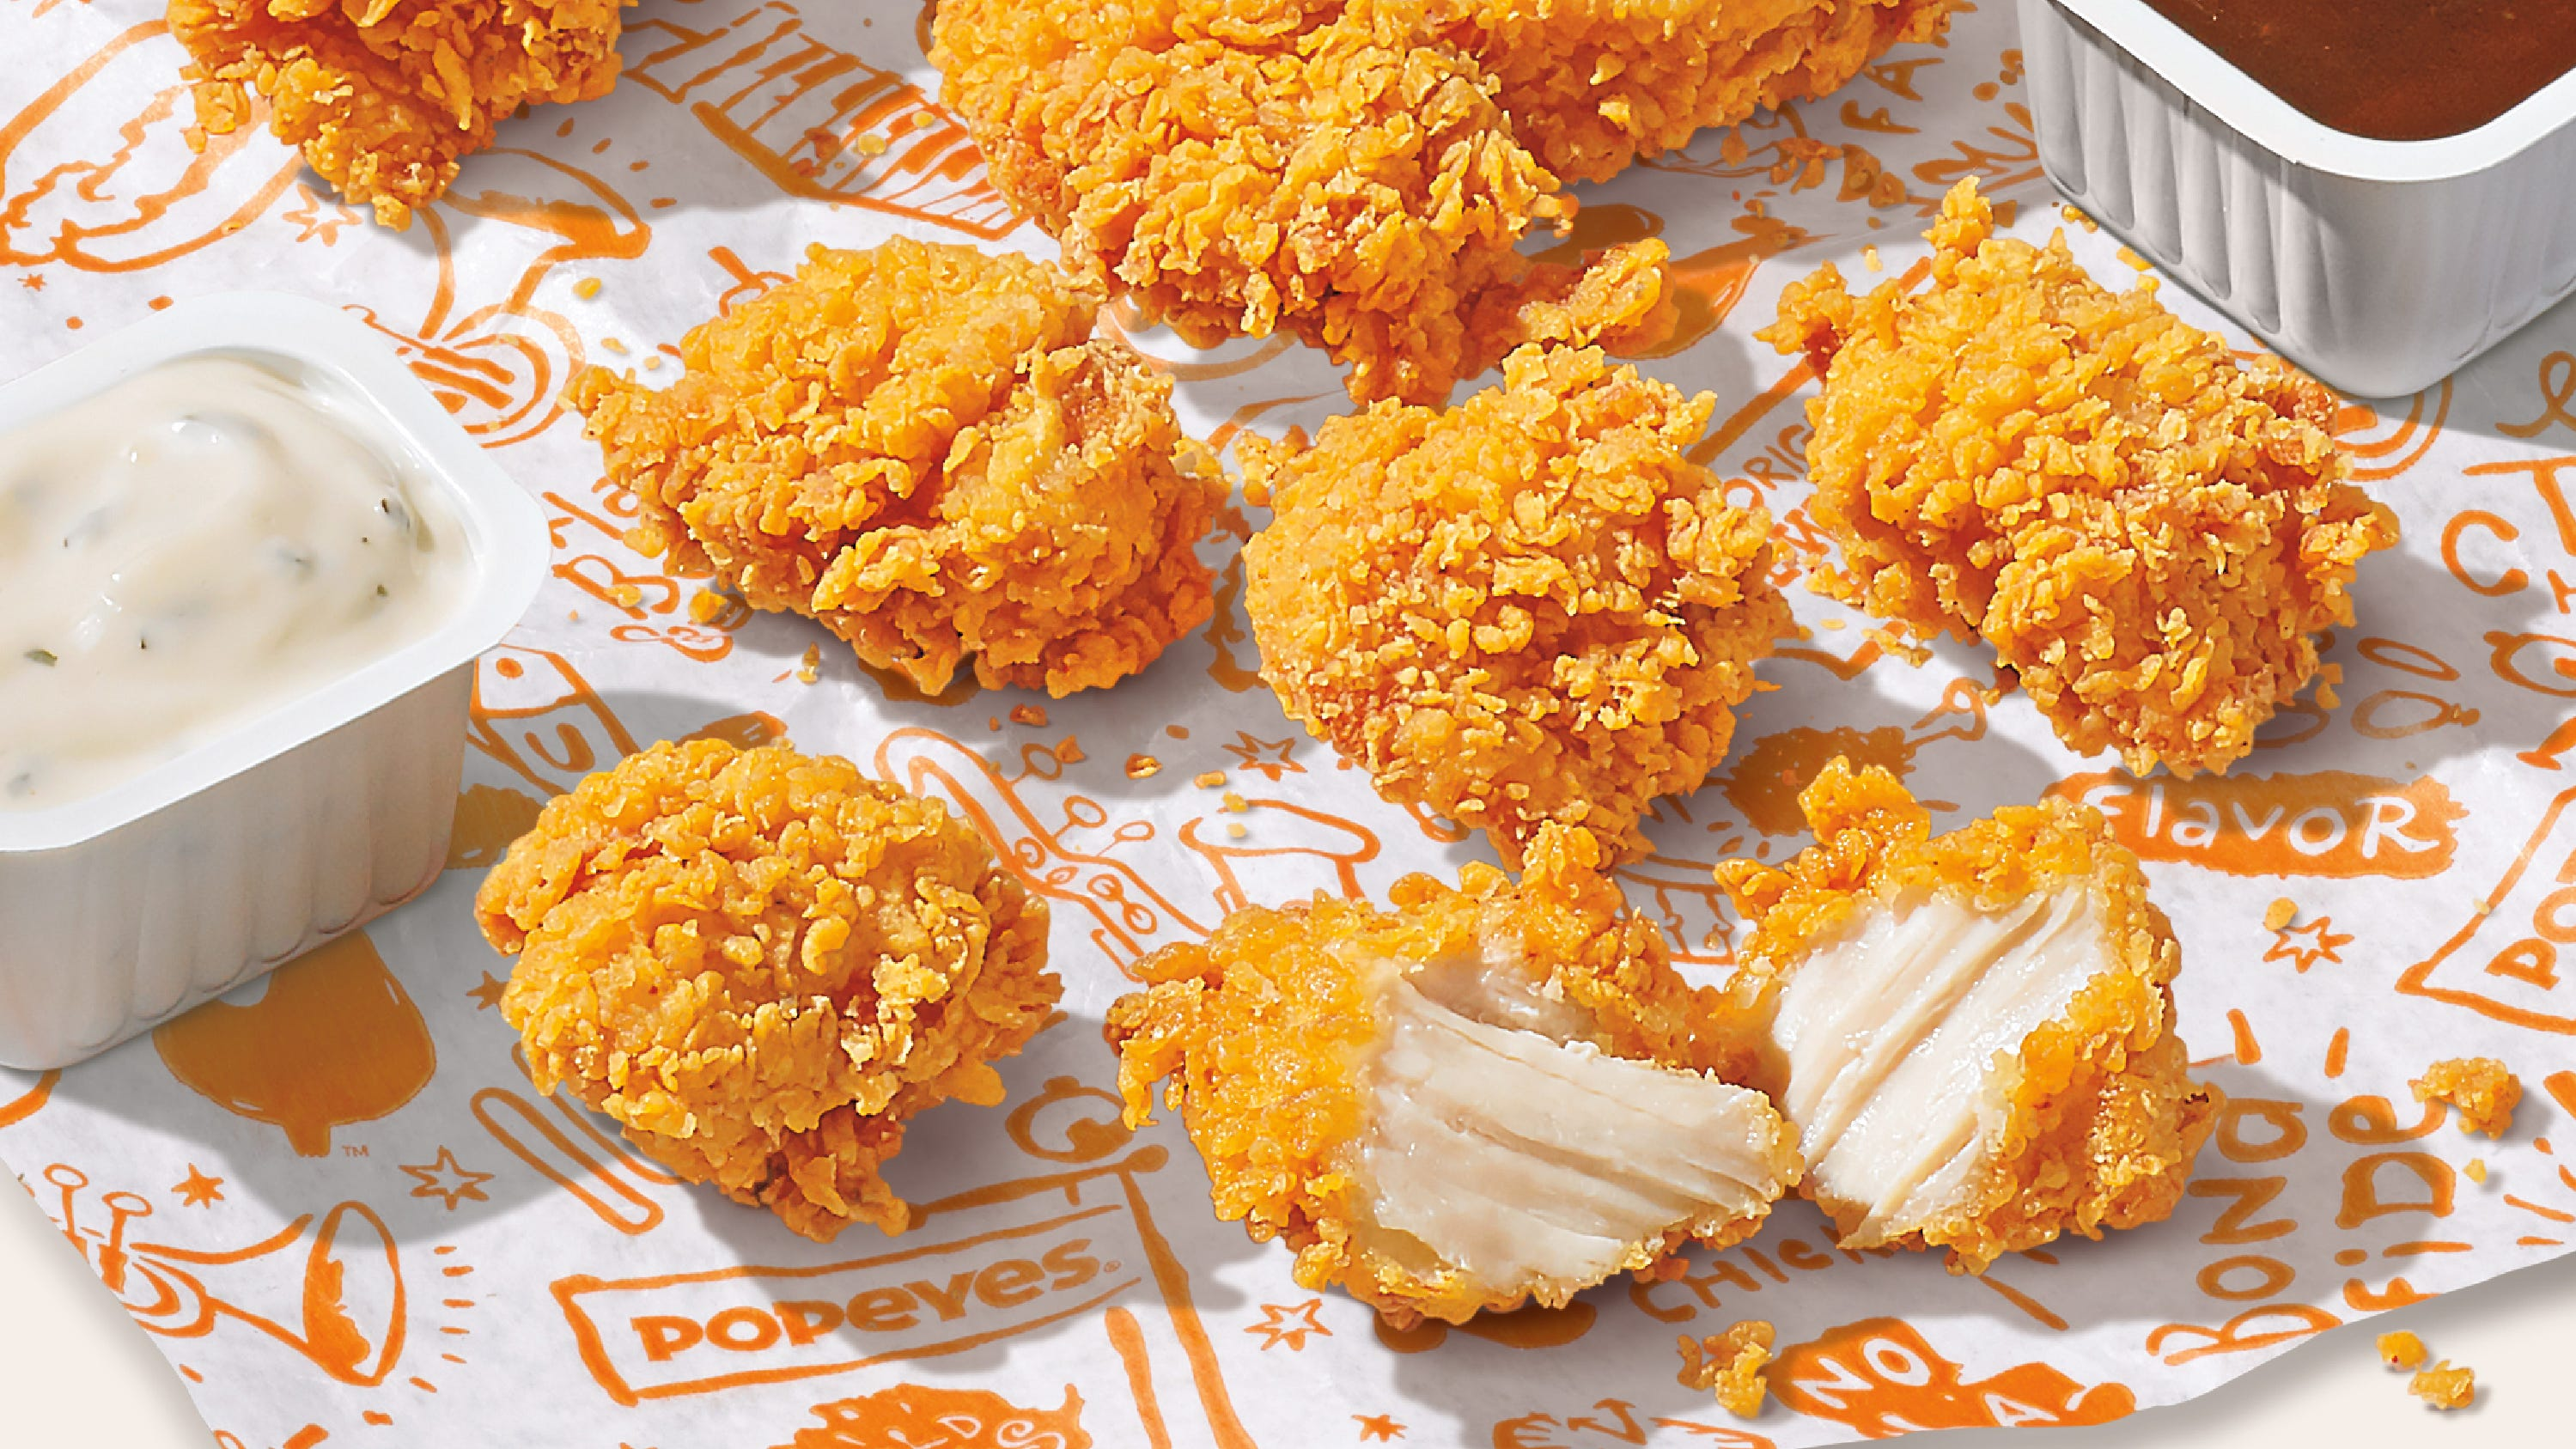 Popeyes chicken nuggets are here, plus where to find deals for Chicken Tender Day Tuesday, Wing Day Thursday